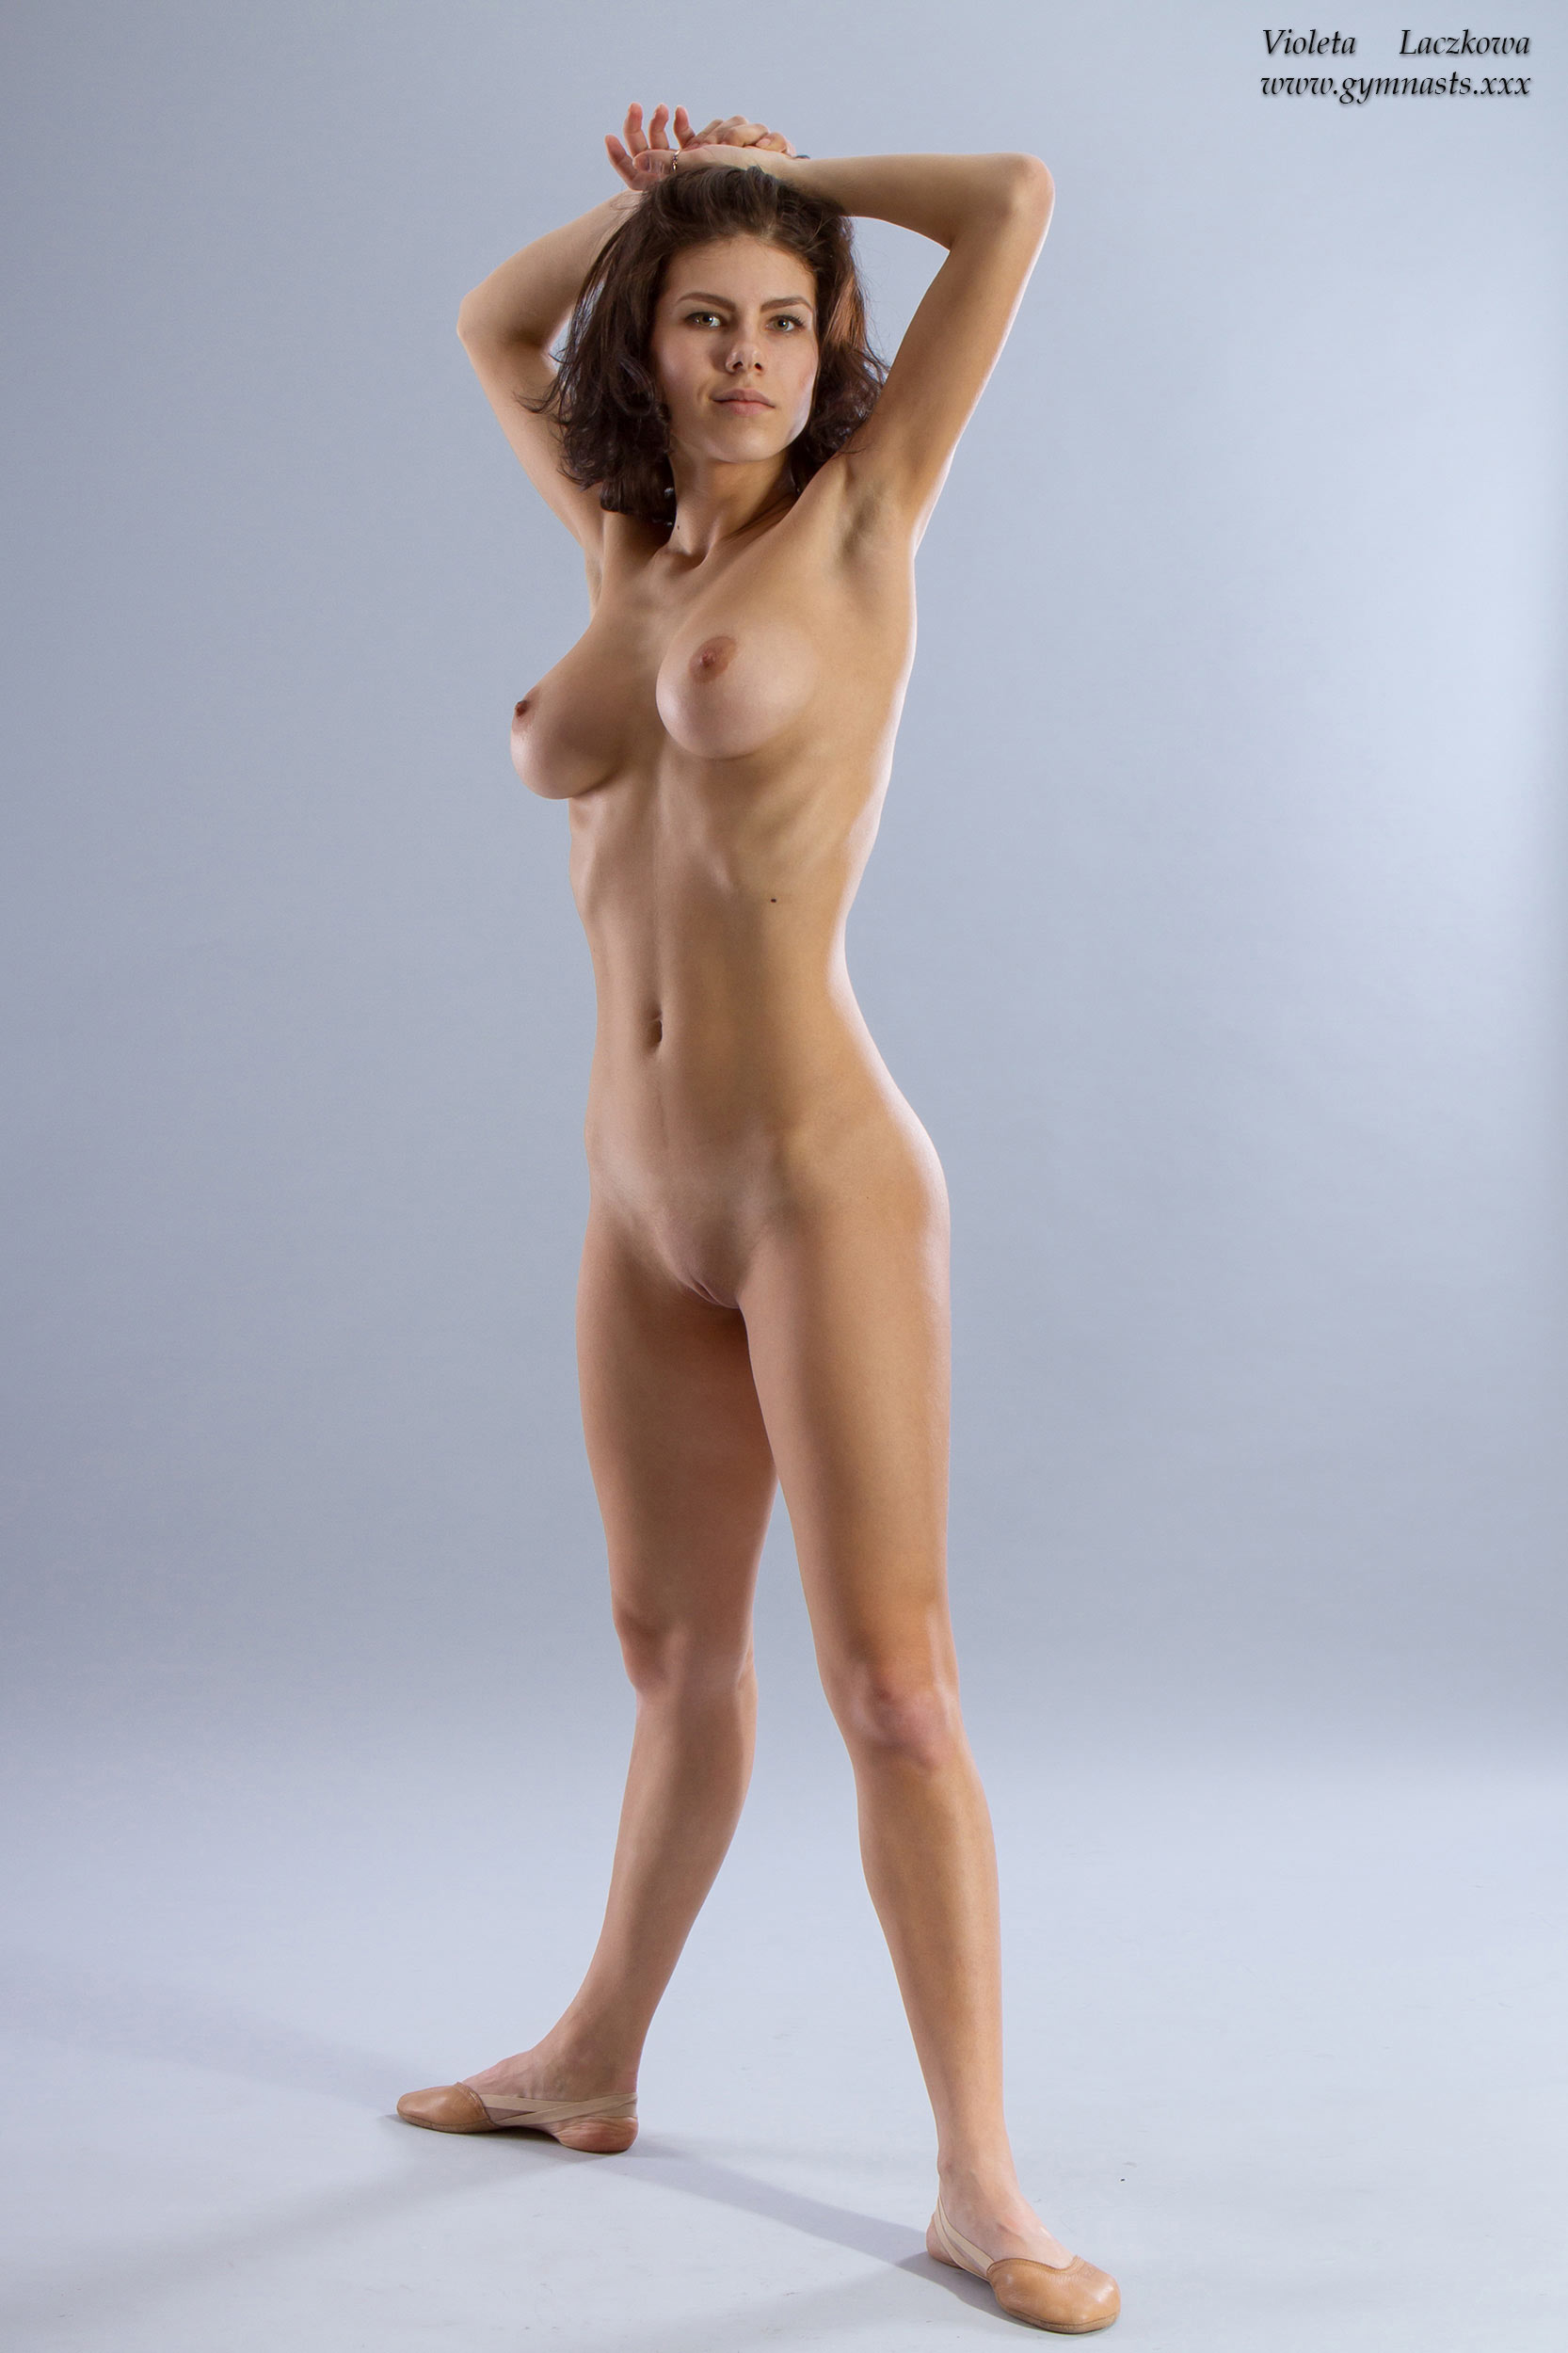 Girl ballet dancers nude